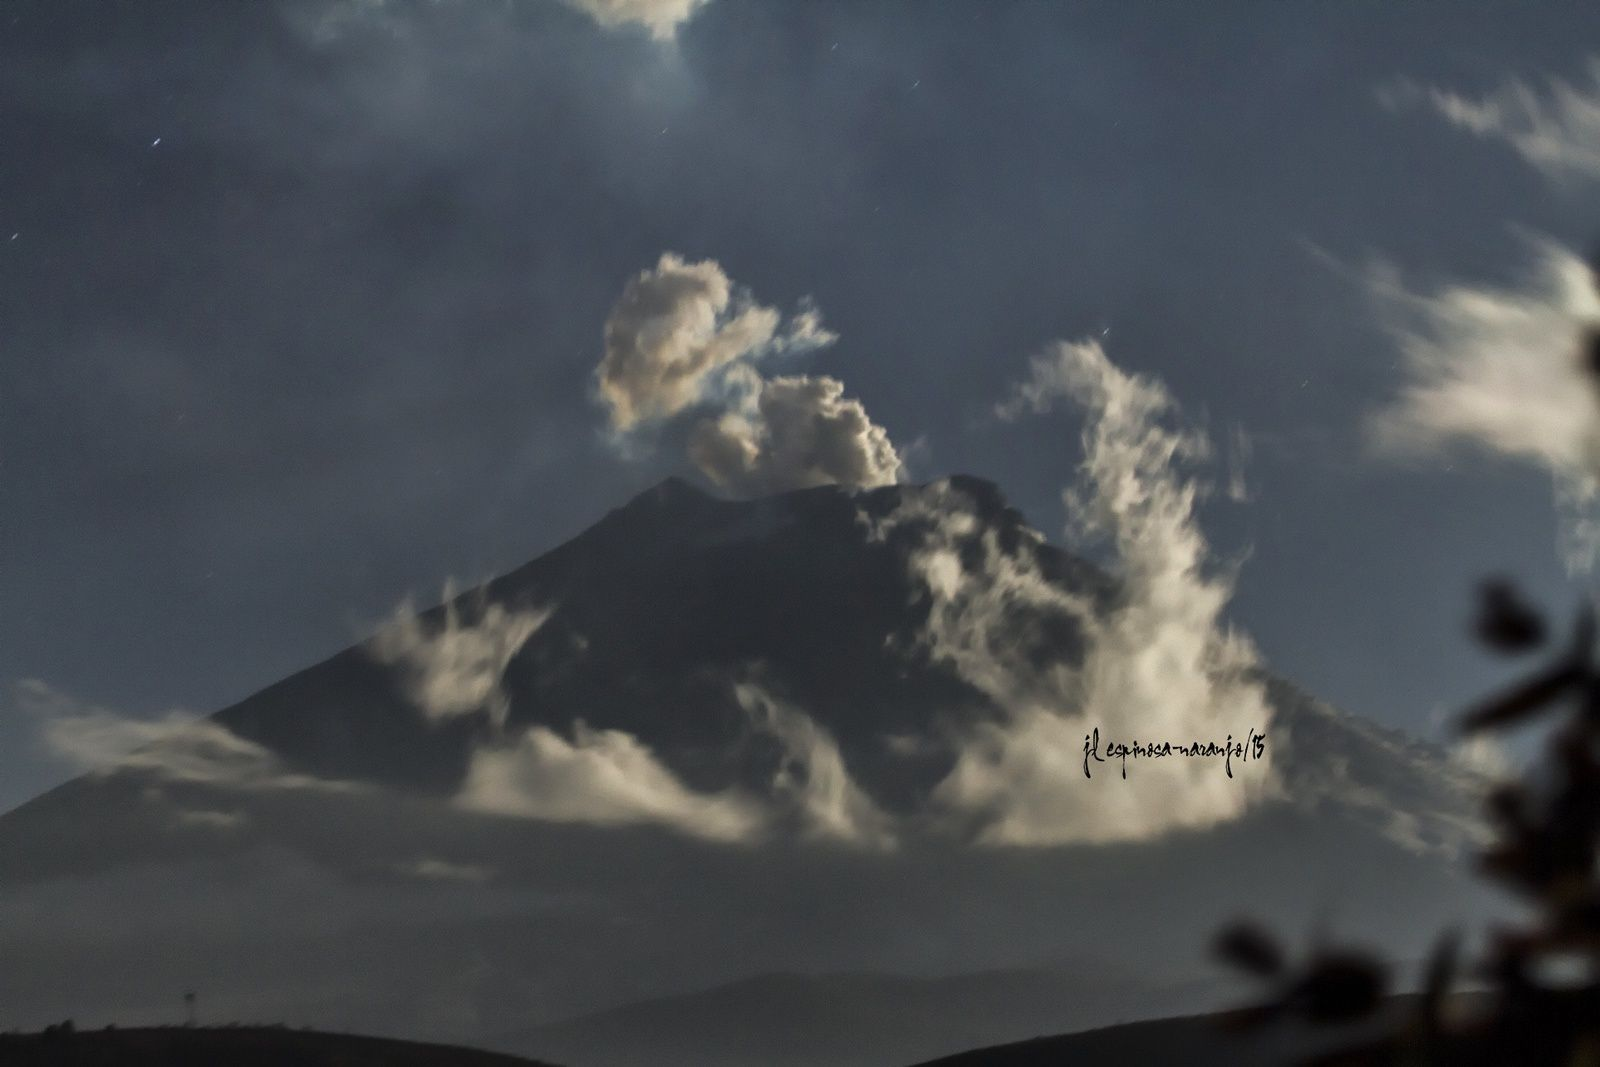 Cotopaxi - Sunday, 09/27/2015 evening - photo Jose Luis Espinosa-Naranjo